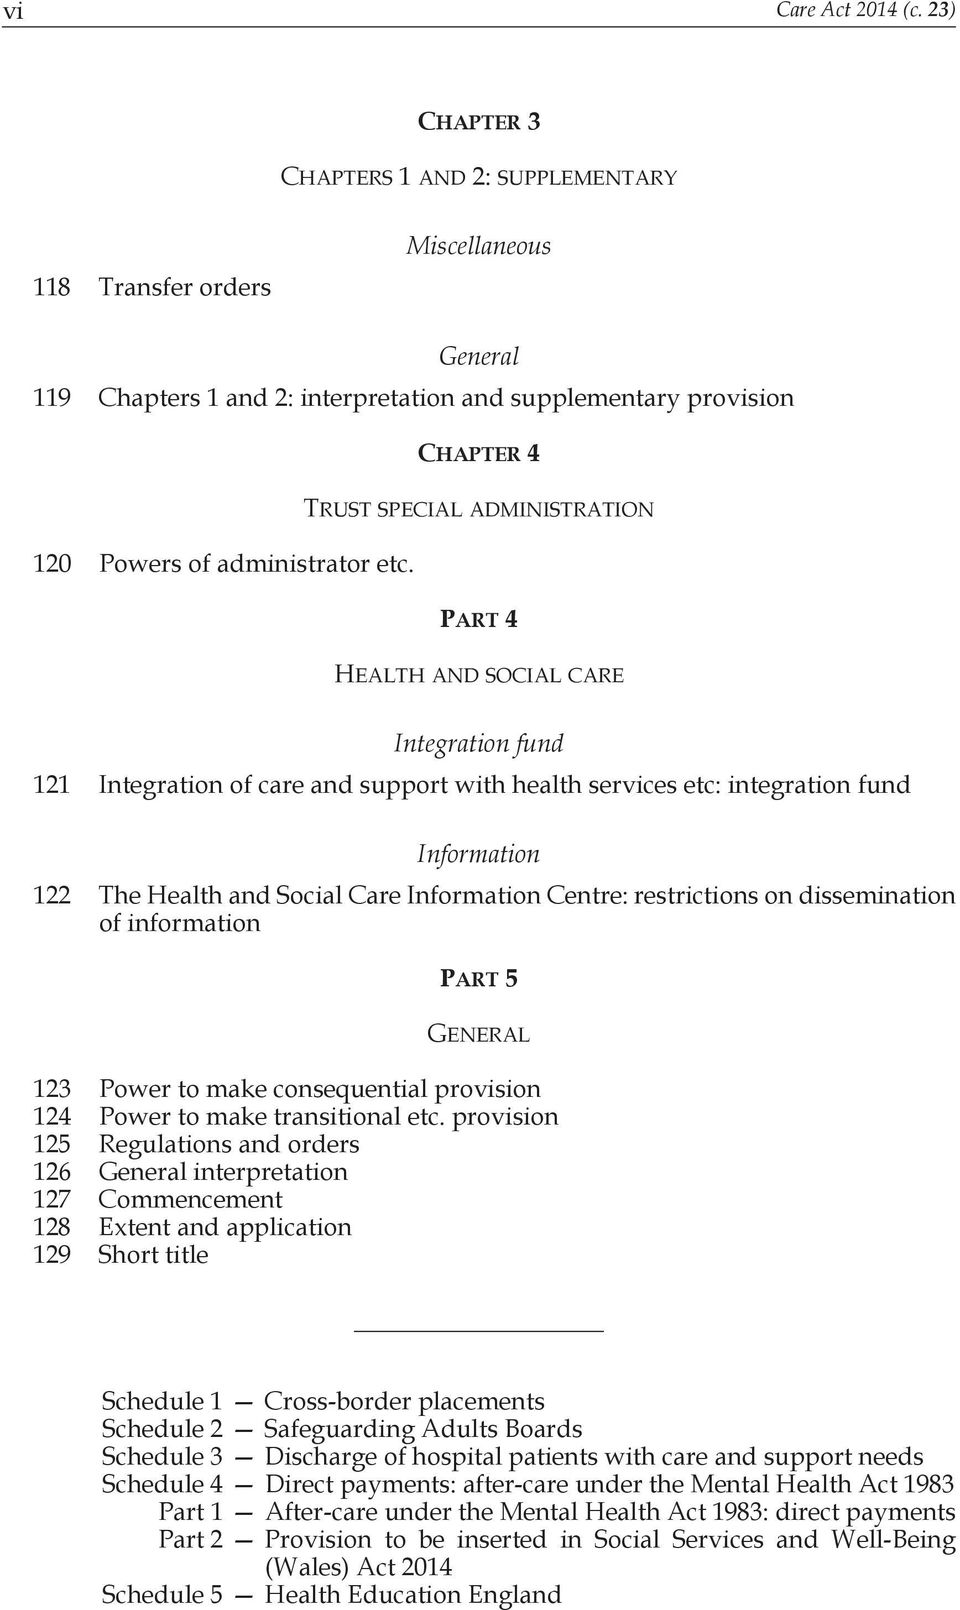 TRUST SPECIAL ADMINISTRATION PART 4 HEALTH AND SOCIAL CARE Integration fund 121 Integration of care and support with health services etc: integration fund Information 122 The Health and Social Care